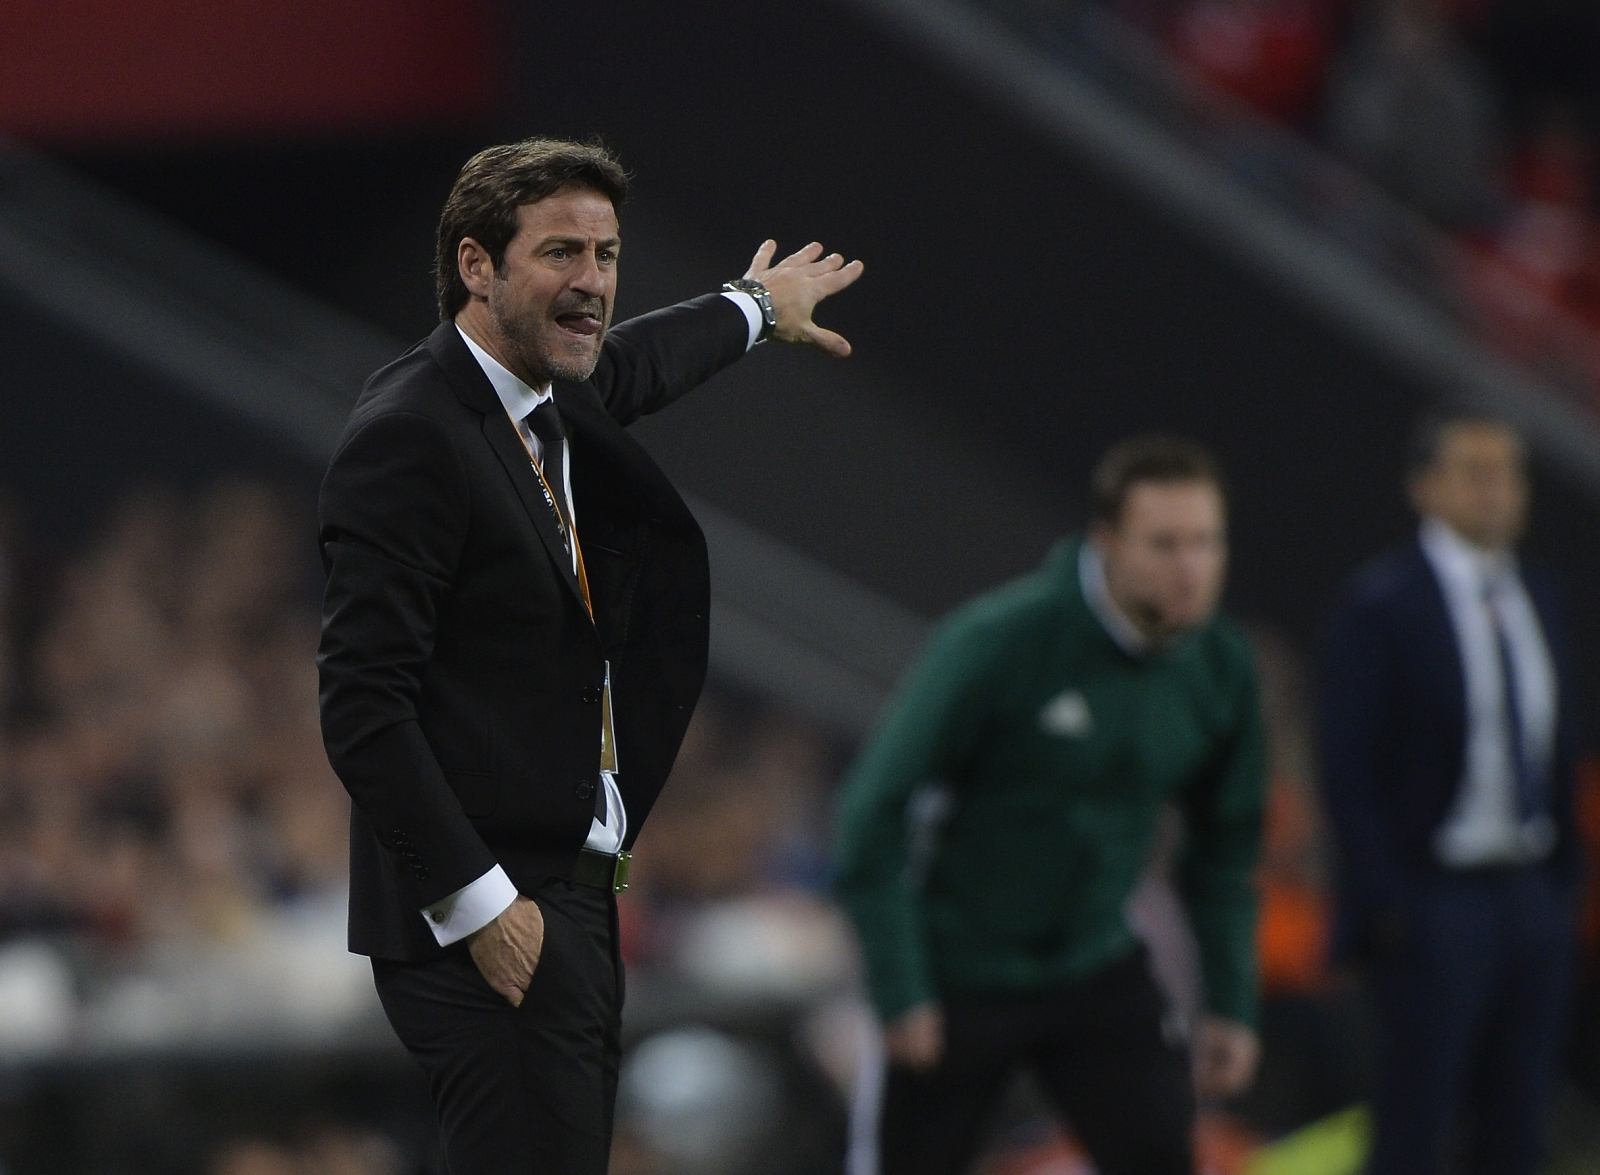 Leeds appoint former APOEL coach Christiansen as new manager